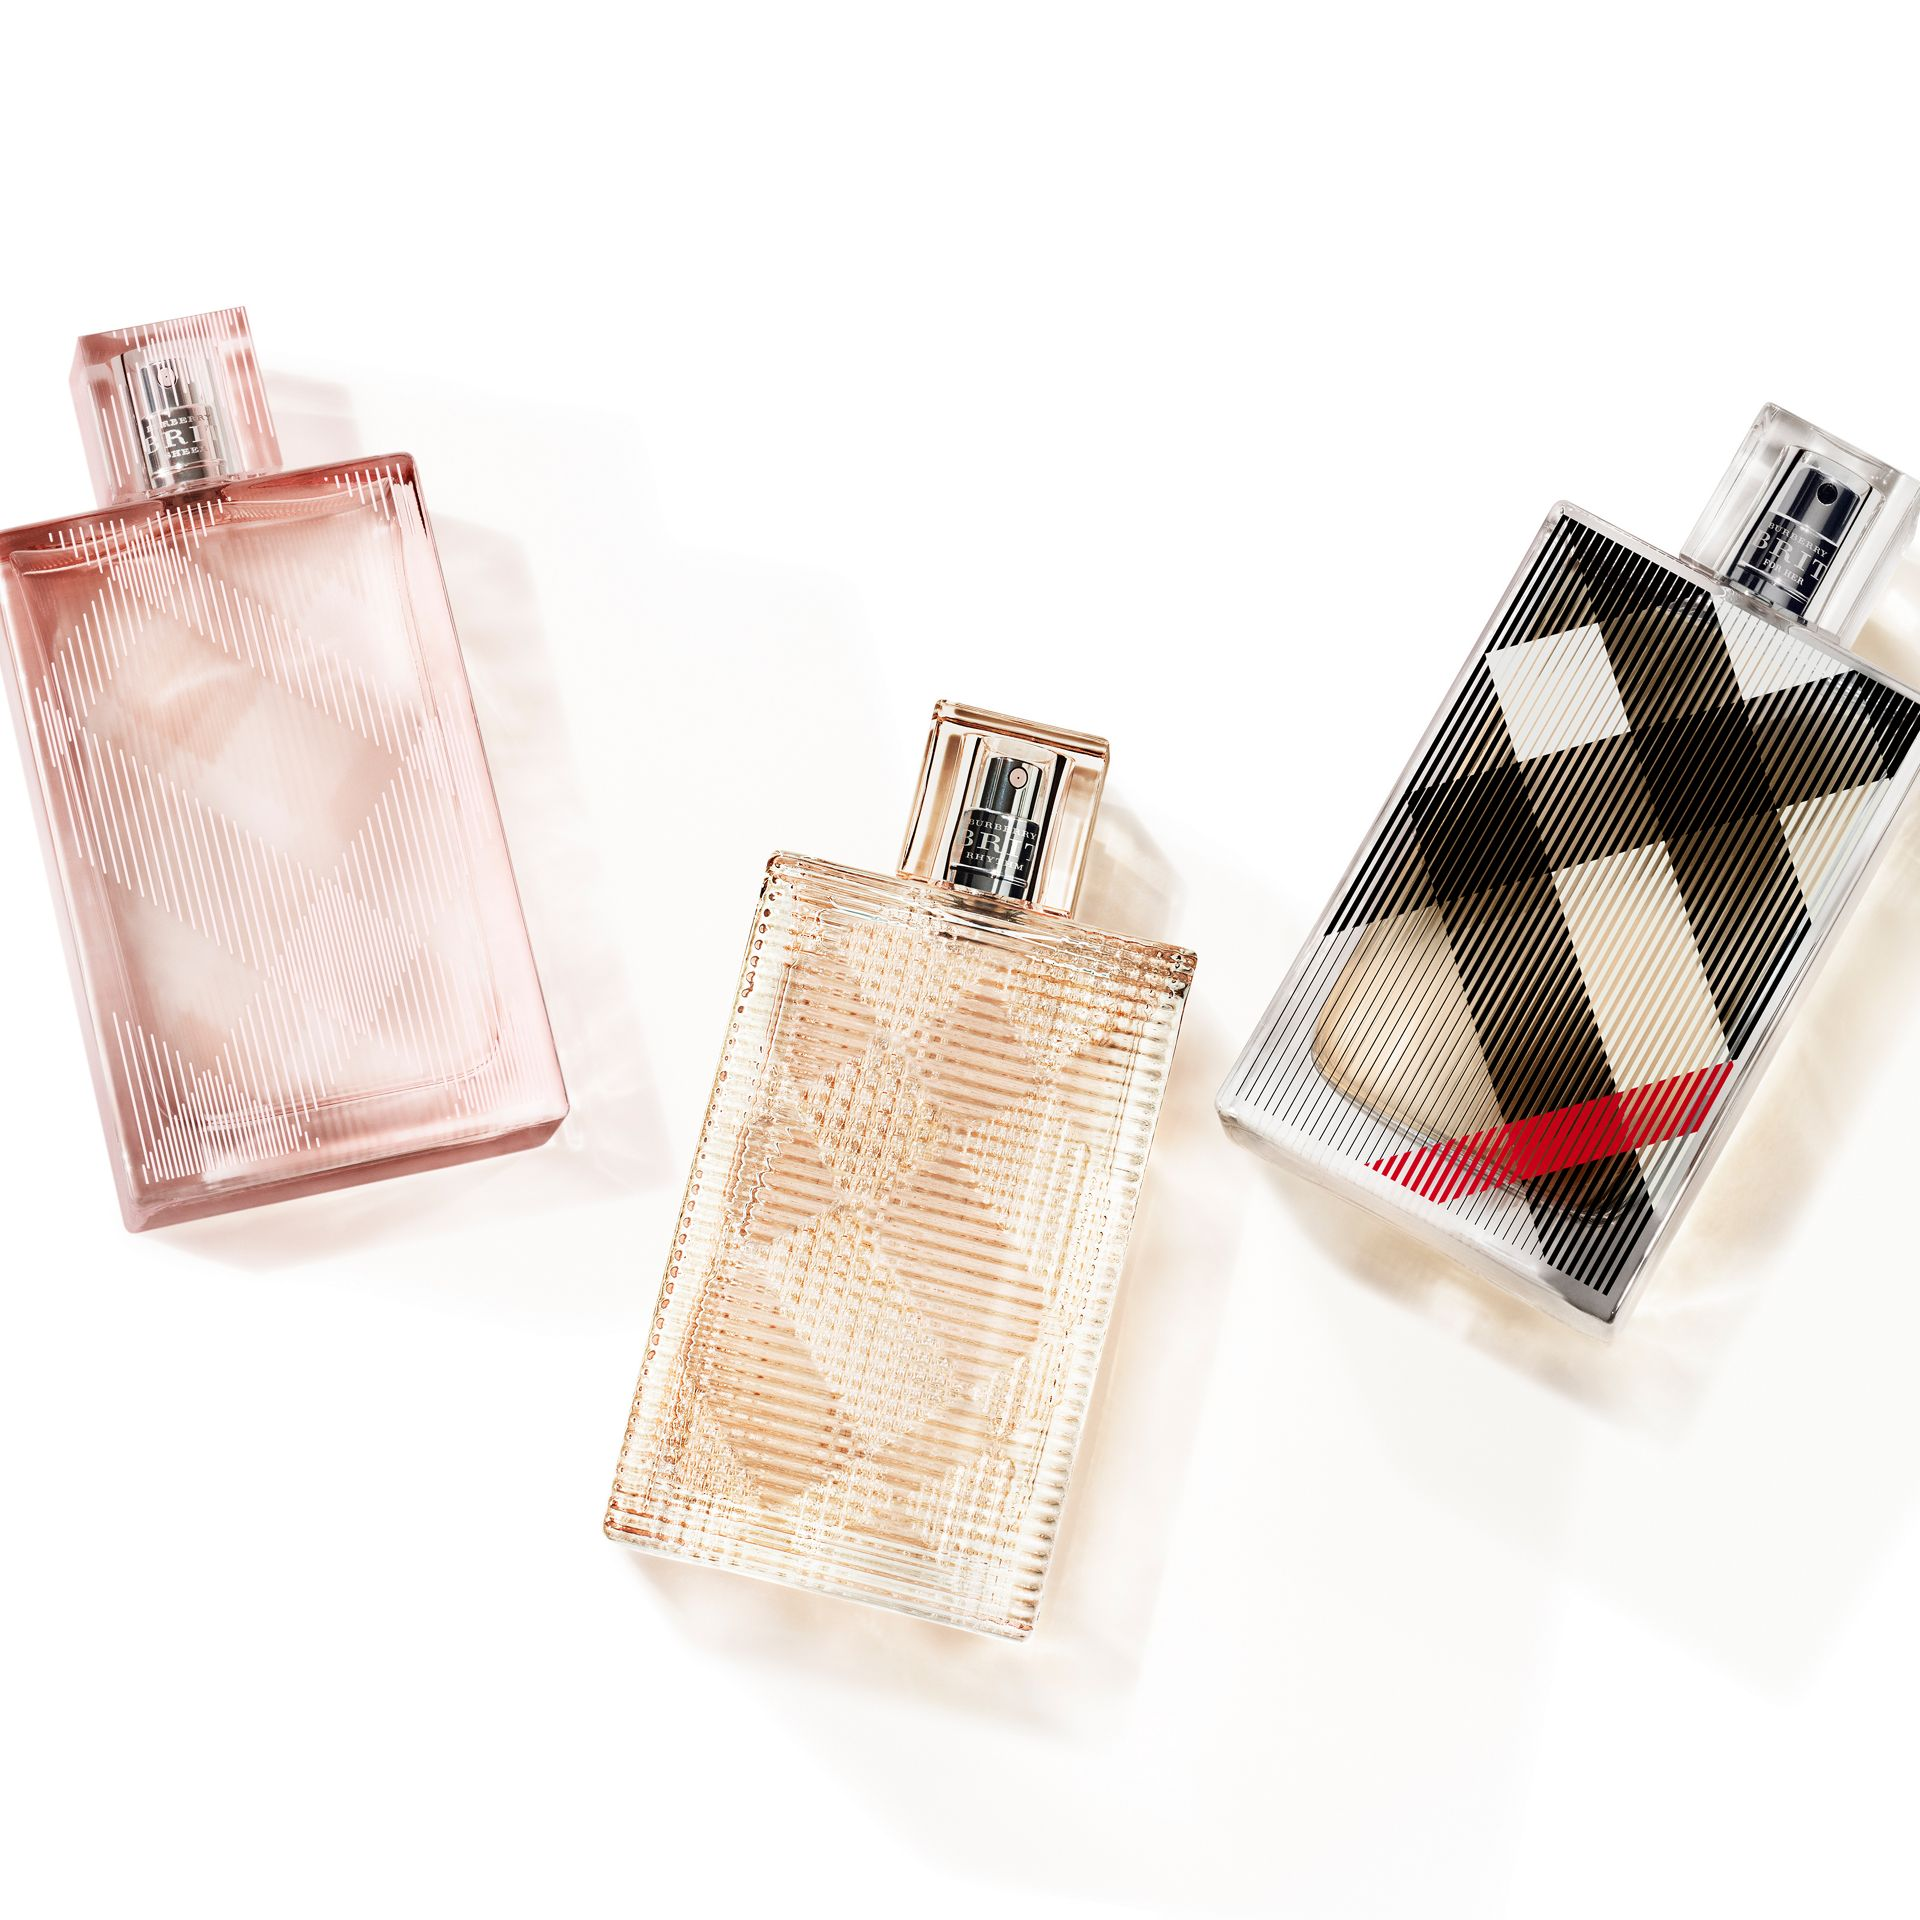 Burberry Brit Sheer for Her Festive Luxury Set in No Colour - Women | Burberry - gallery image 1